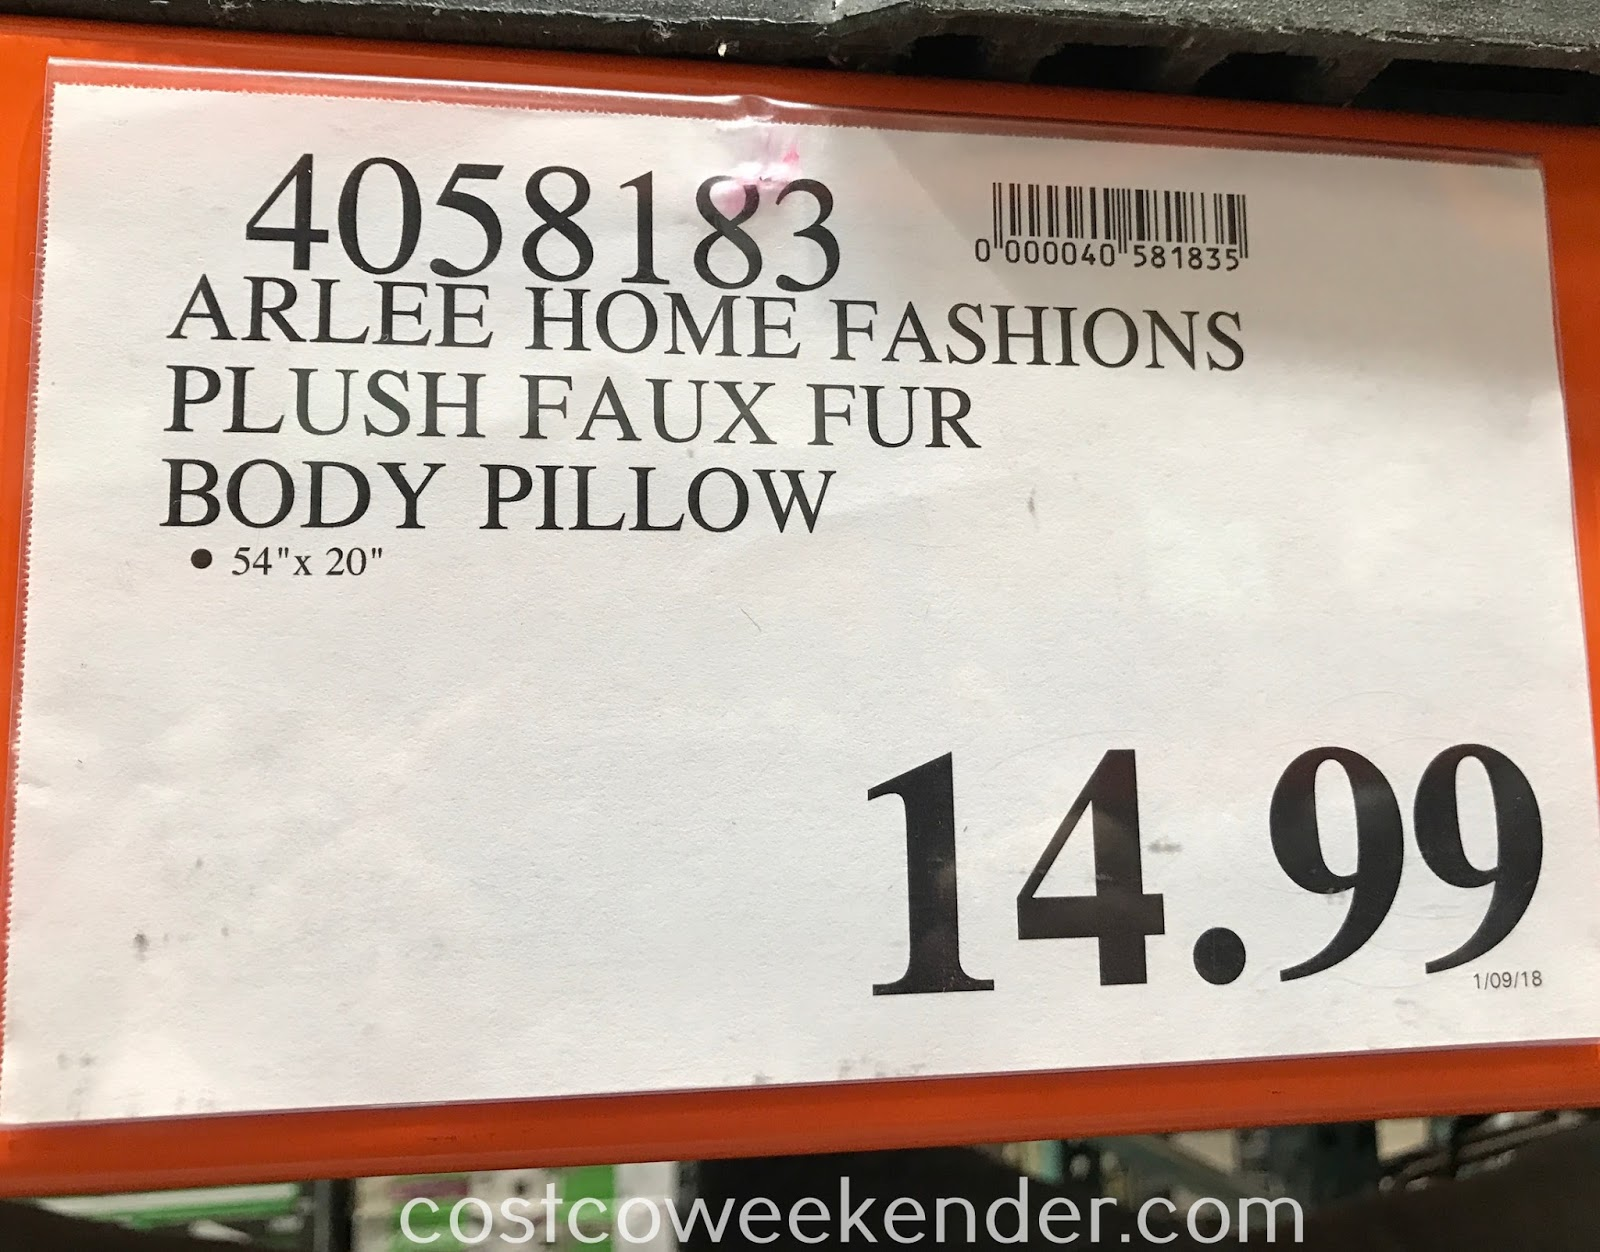 Deal for the Arlee Home Fashions Plush Faux Fur Body Pillow at Costco